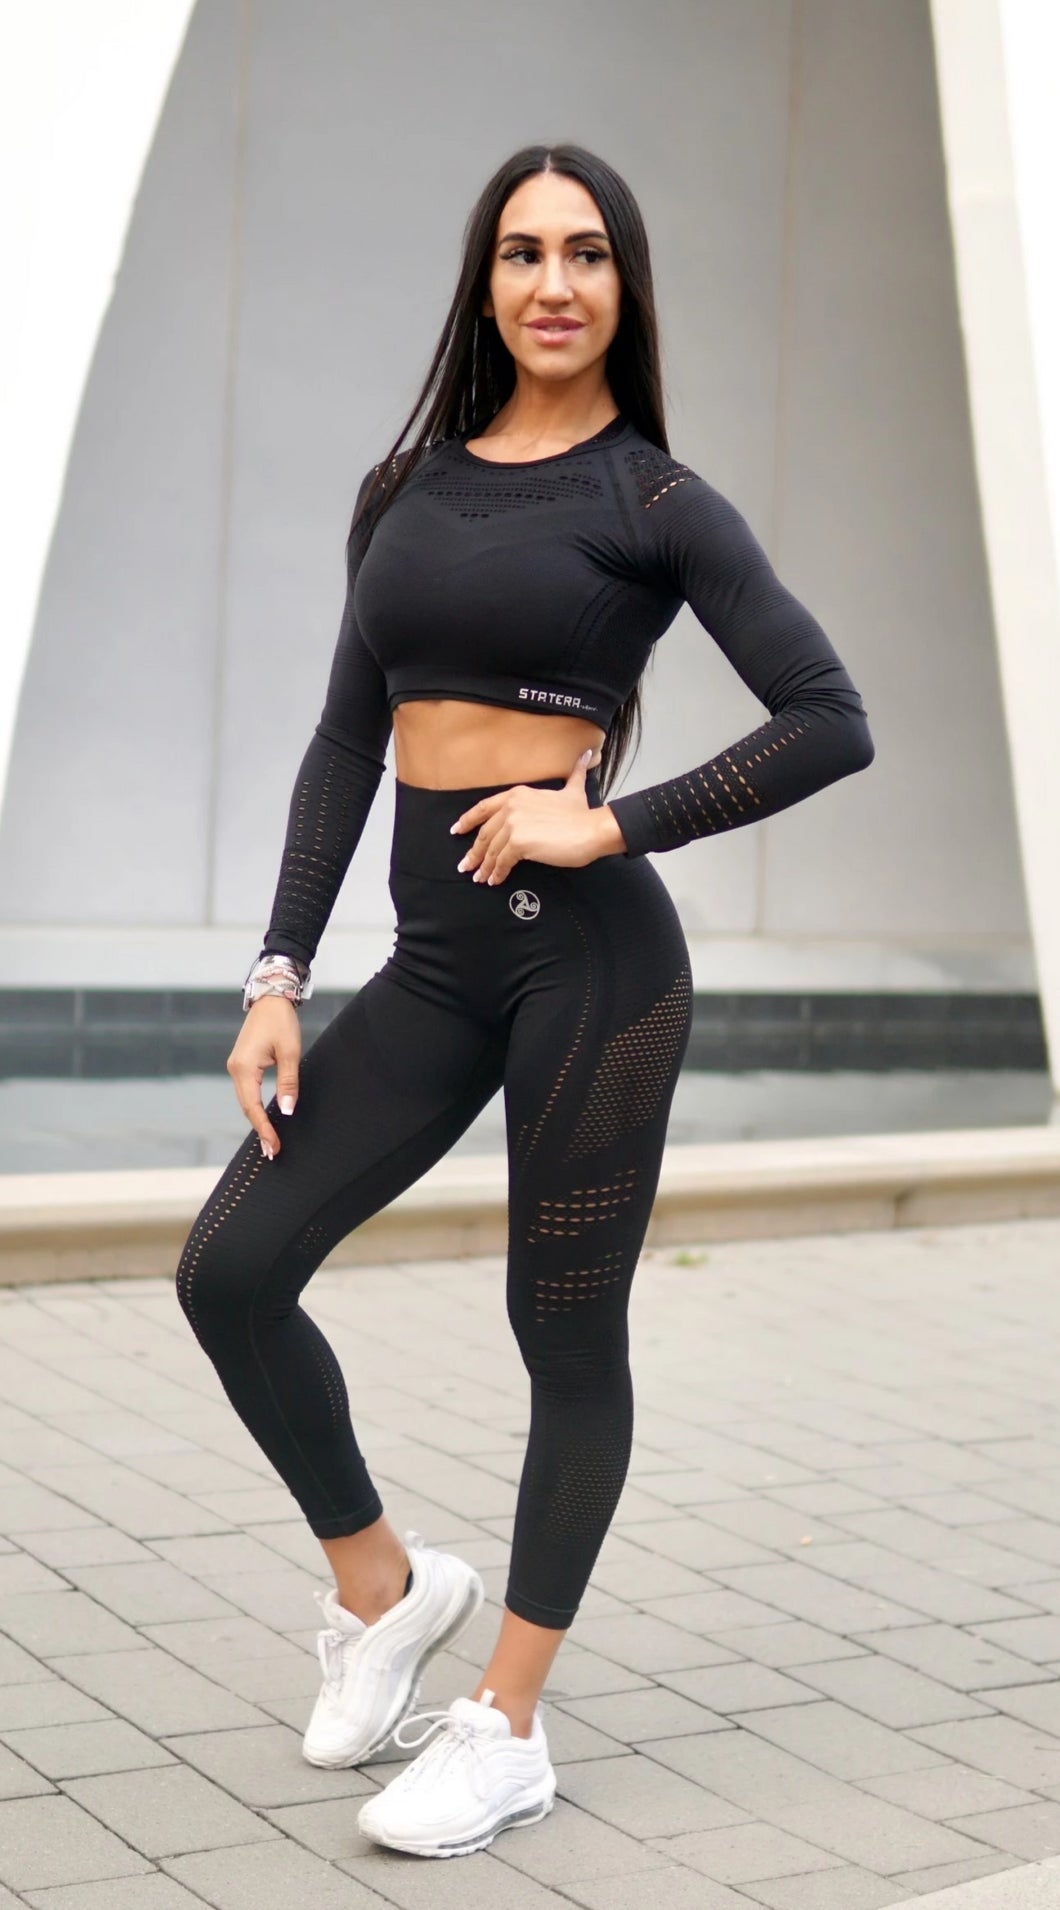 Elite Black Seamless - LEGGINGS - Statera Apparel